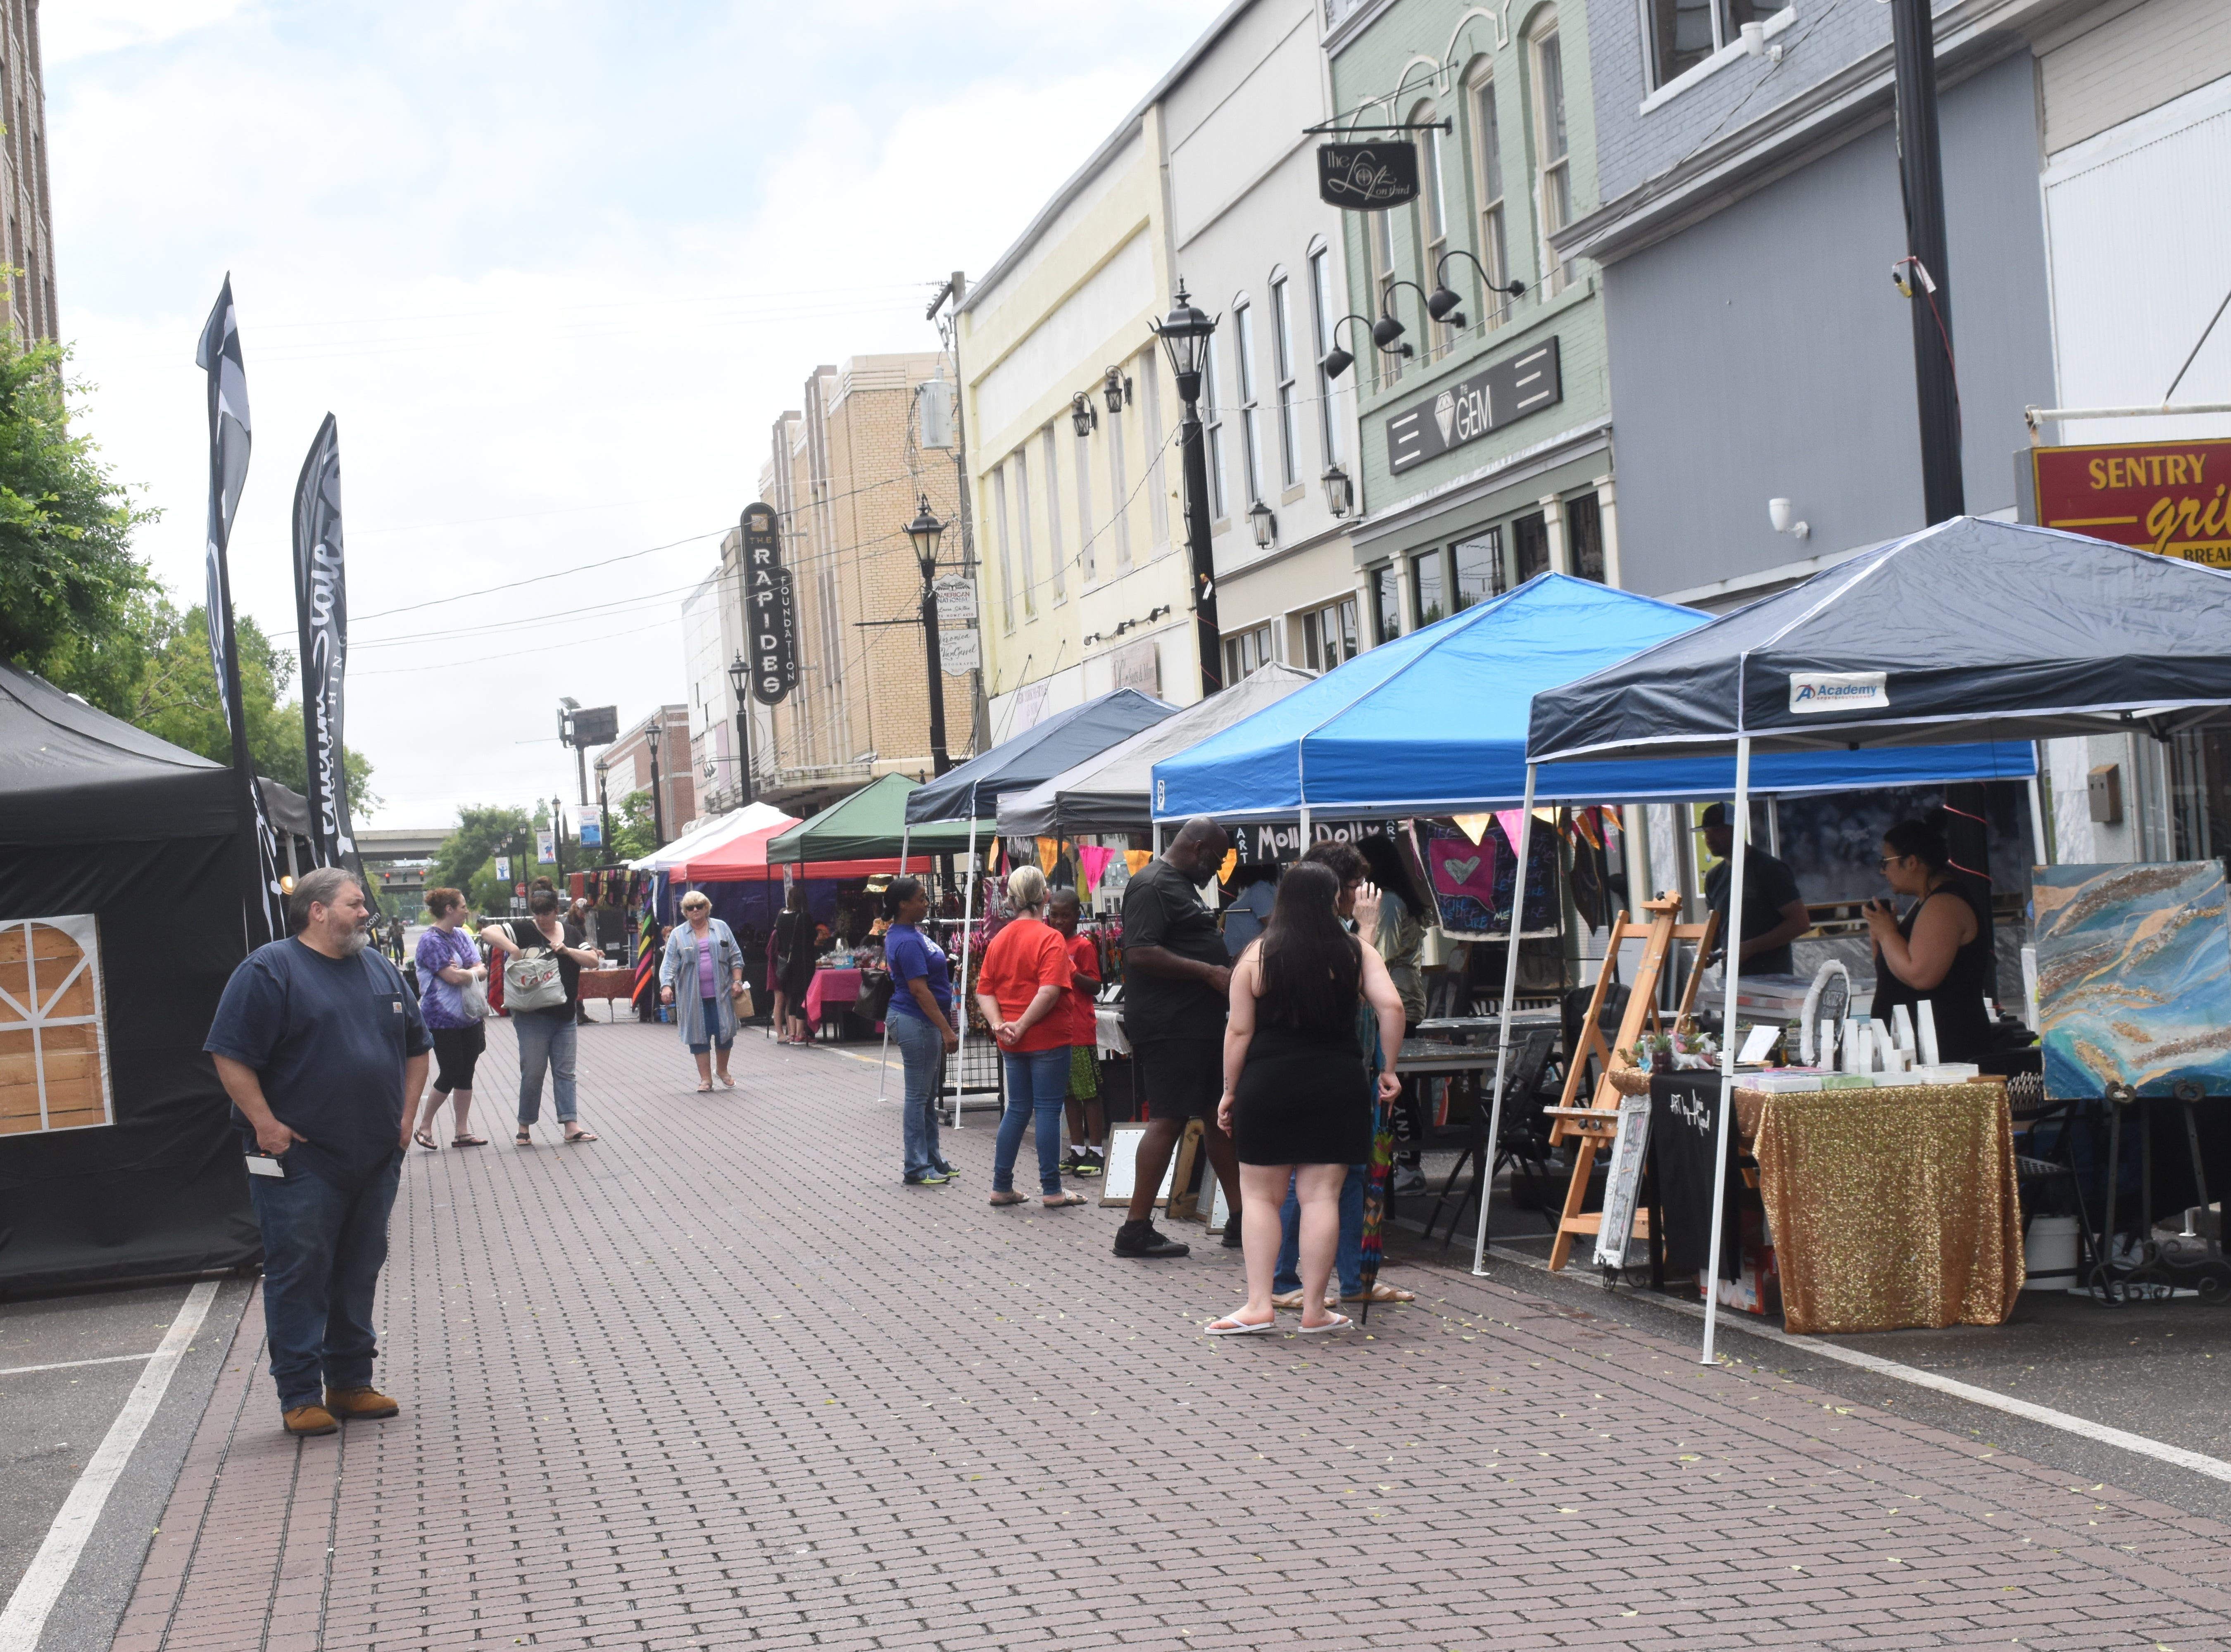 The Alexandria Red River Festival continued Saturday, May 4, 2019 in downtown Alexandria with live music, vendors, the Classic Car and Truck Show, a barbecue cook-off and children's activities. The festival continues Sunday with music and Cinco de Mayo activities.